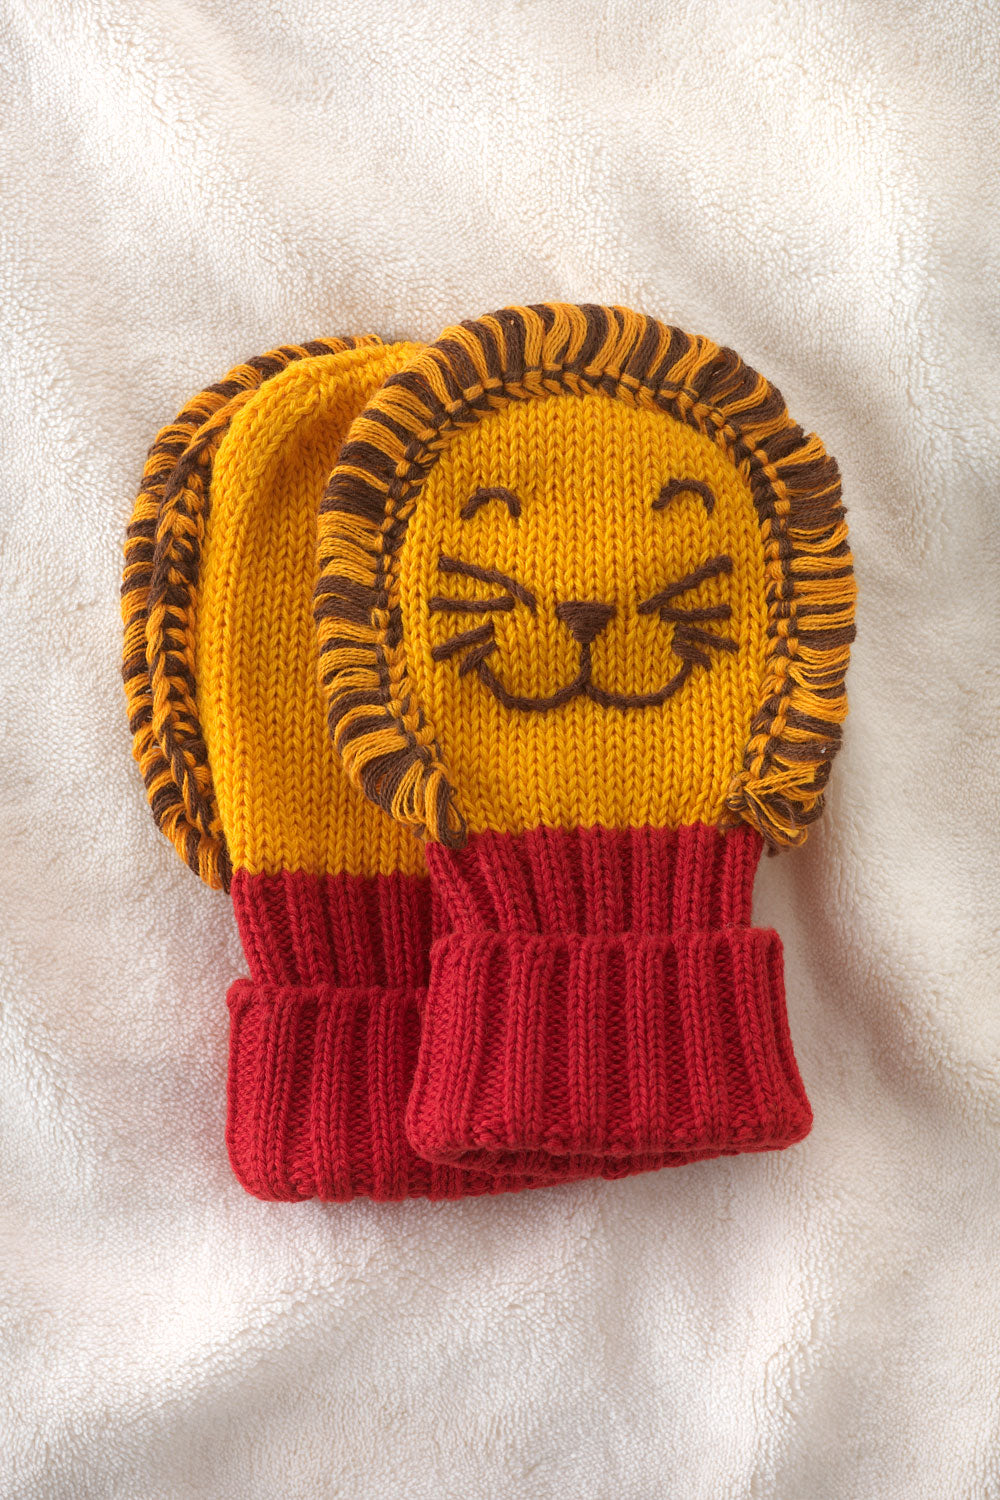 joobles-fair-trade-organic-baby-mittens-roar-the-lion